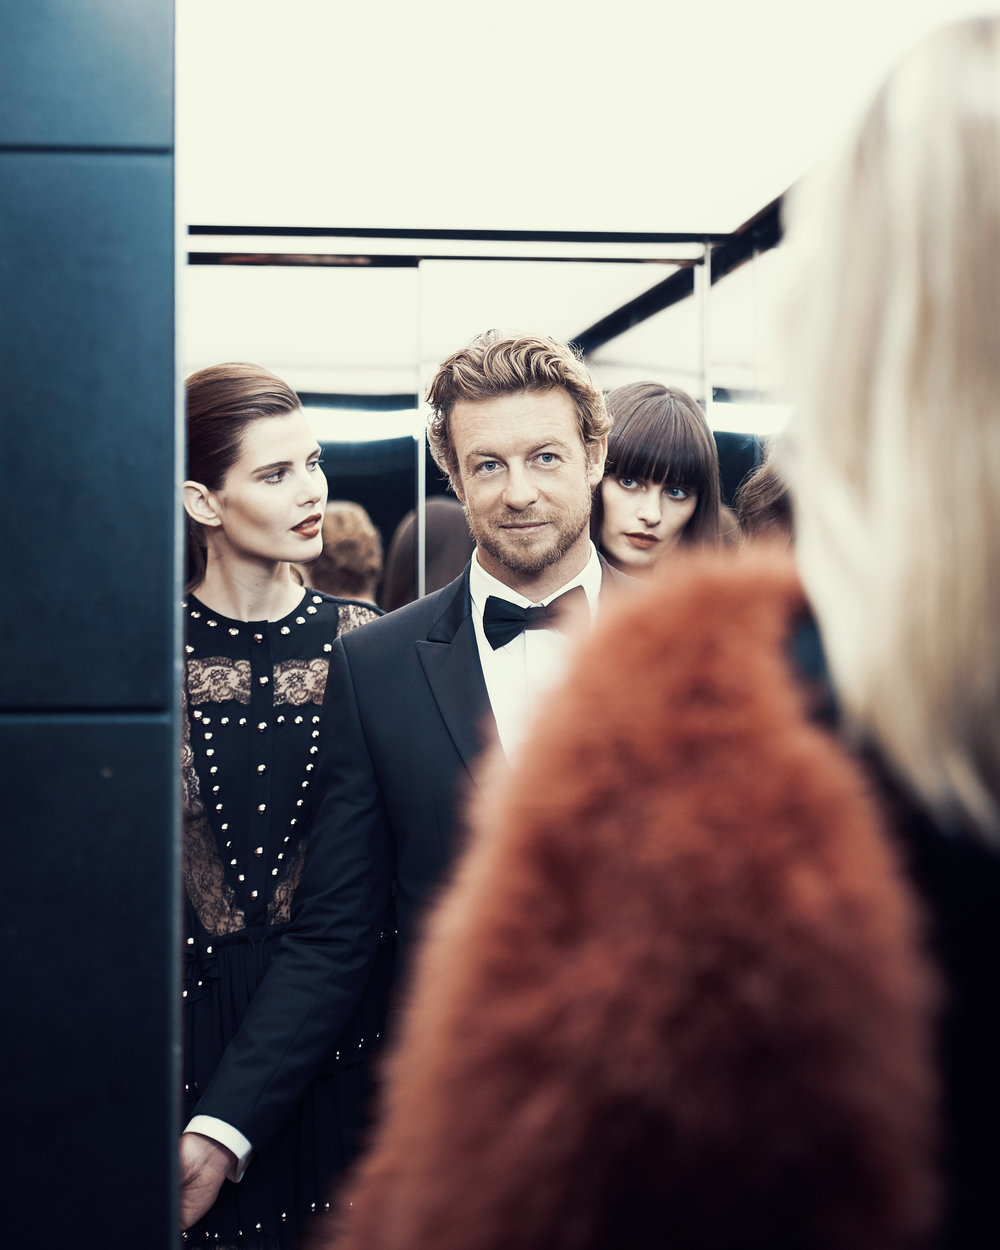 GIVENCHY BEAUTY   - Simon Baker / Digital